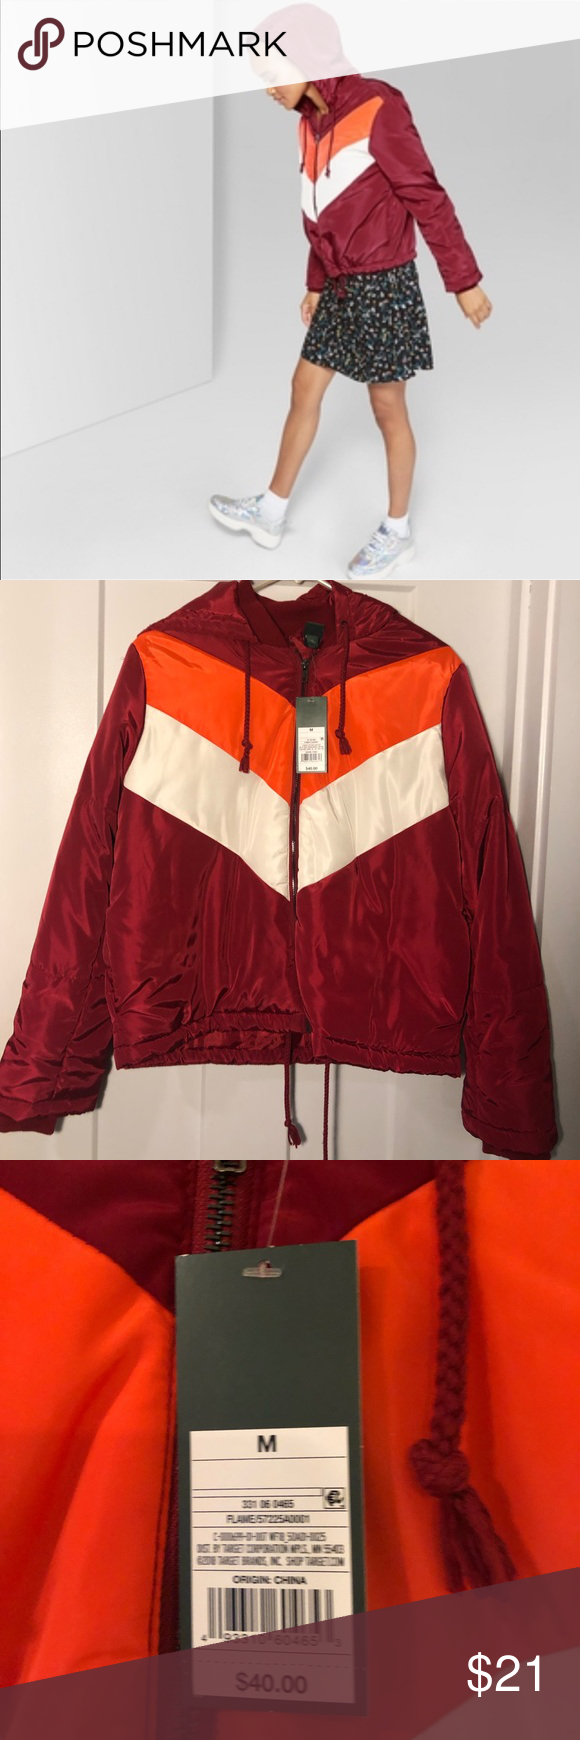 Wild Fable Puffer Jacket Nwt Puffer Jackets Clothes Design Wild Fable [ 1740 x 580 Pixel ]